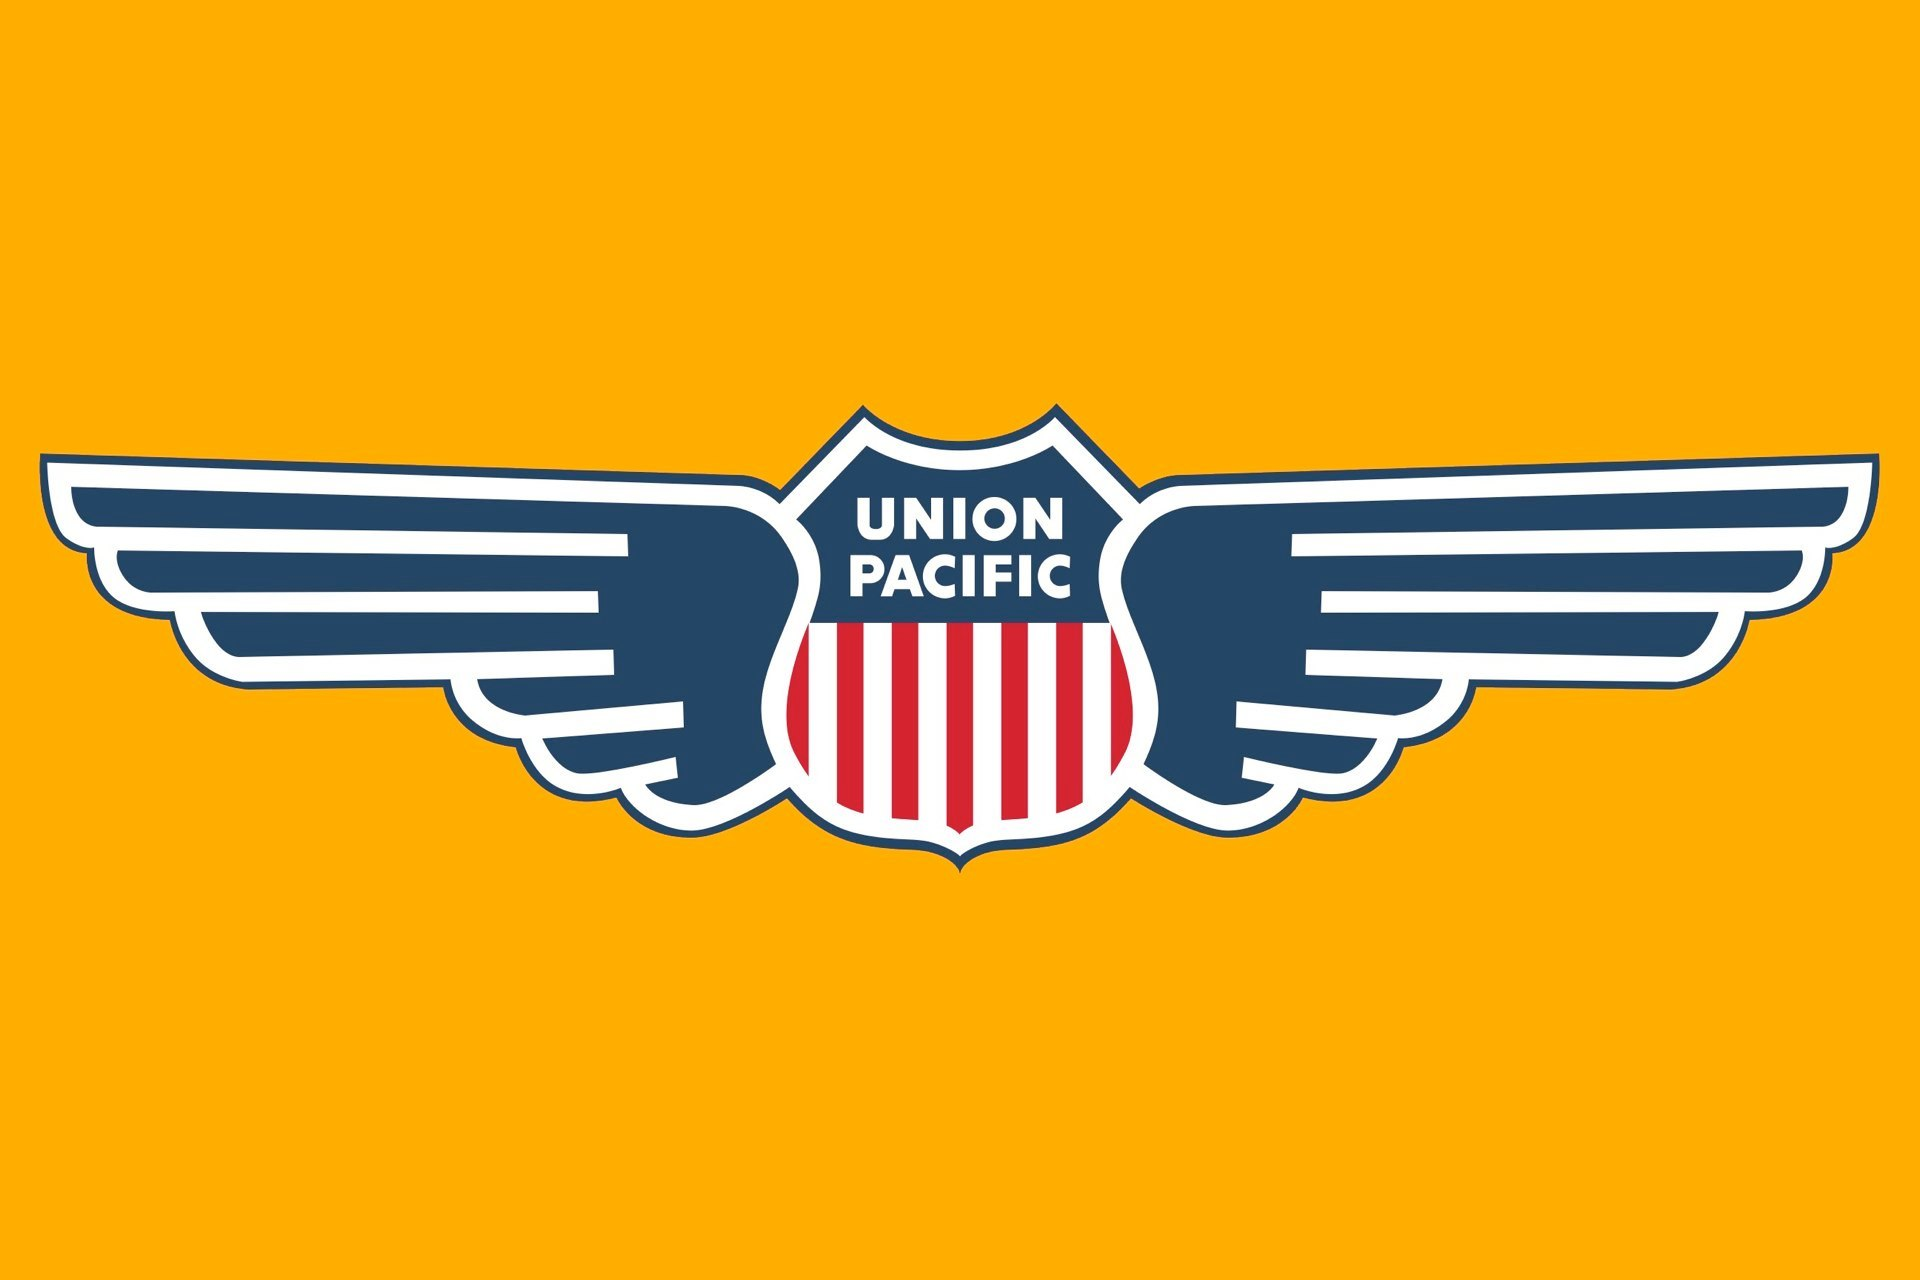 Union Pacific Vector PNG - 29687